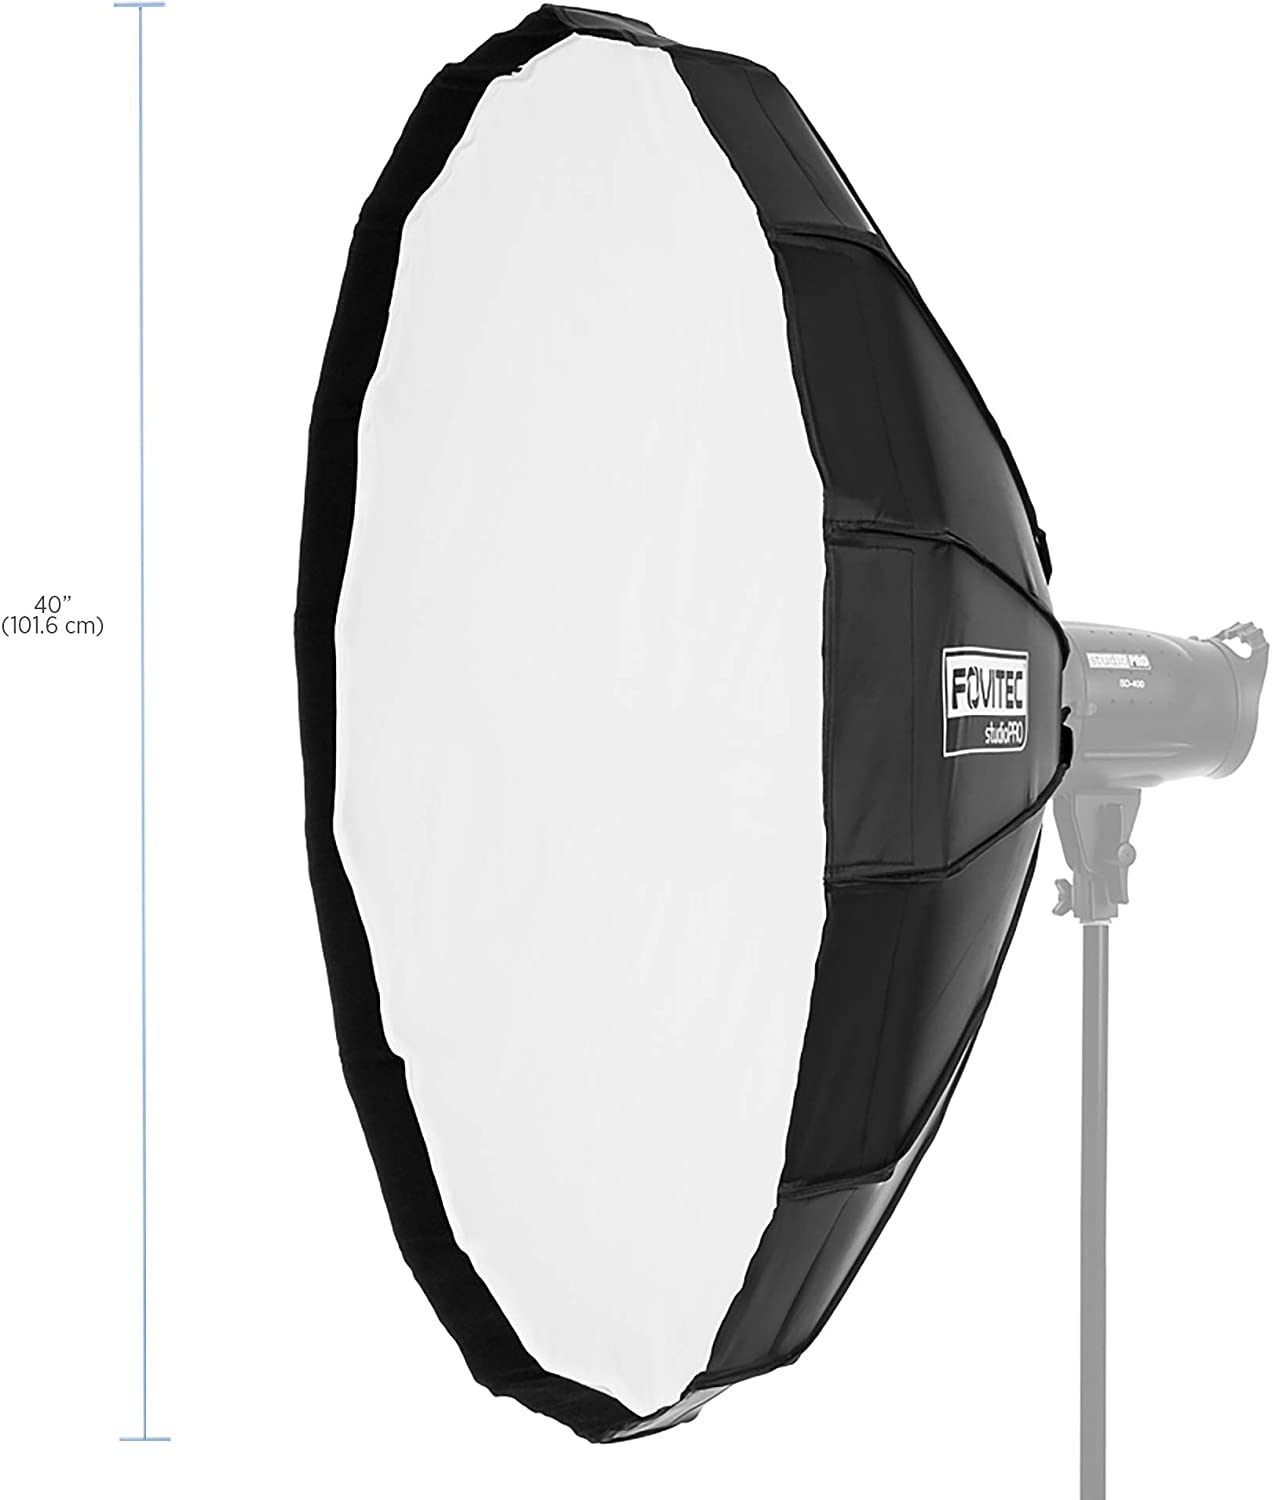 1x 48 inch Octagon Photography Travel Beauty Dish Bowens w//Grid Quick EZ Set Up - Lightweight Fovitec Bowens Mount Durable Nylon Easy Set-up